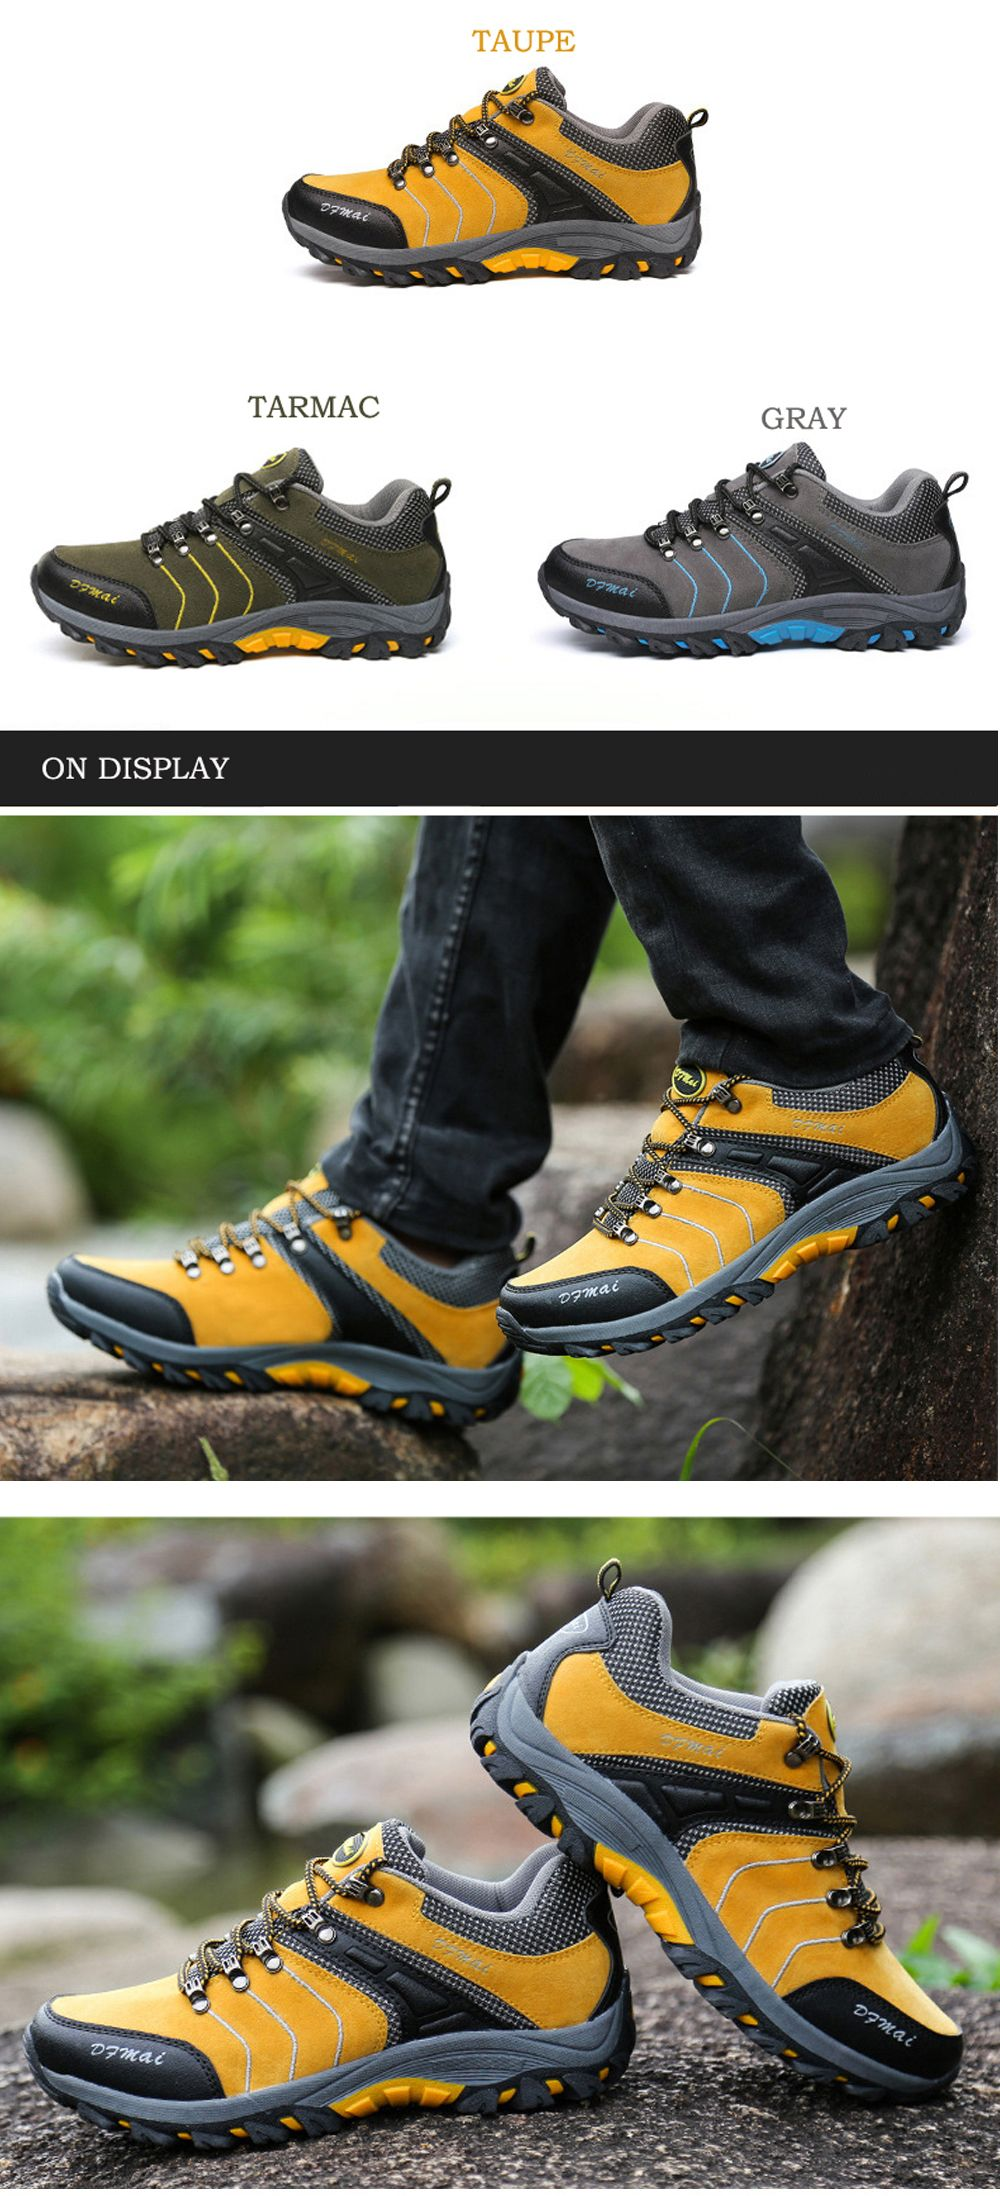 2017 Autumn and Winter New Men'S Hiking Shoes Low To Help Waterproof Hiking Shoes Fashion Sports Outdoor Shoes